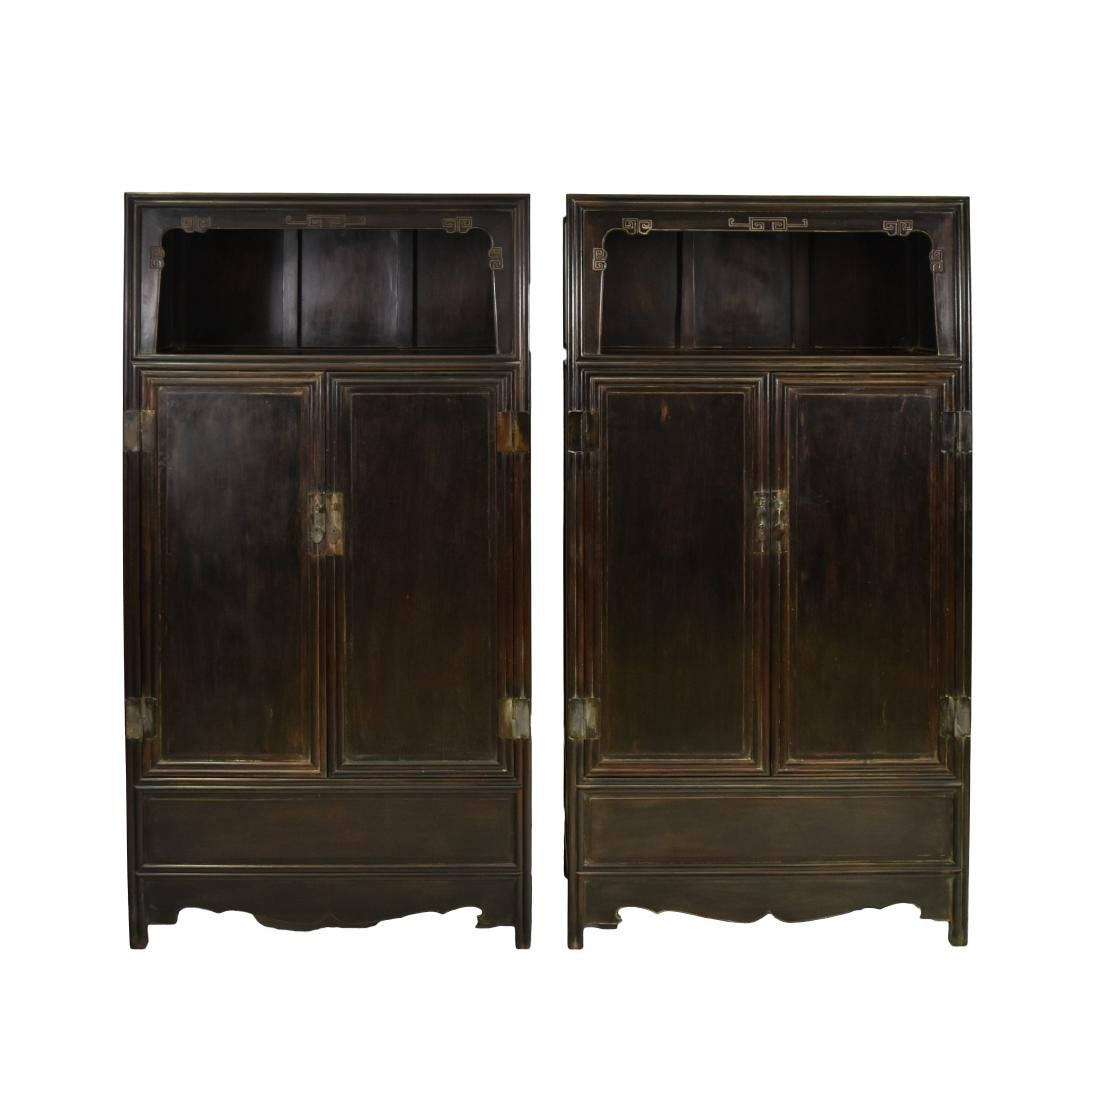 PAIR ANTIQUE CHINESE BRASS-MOUNTED ZITAN CABINETS